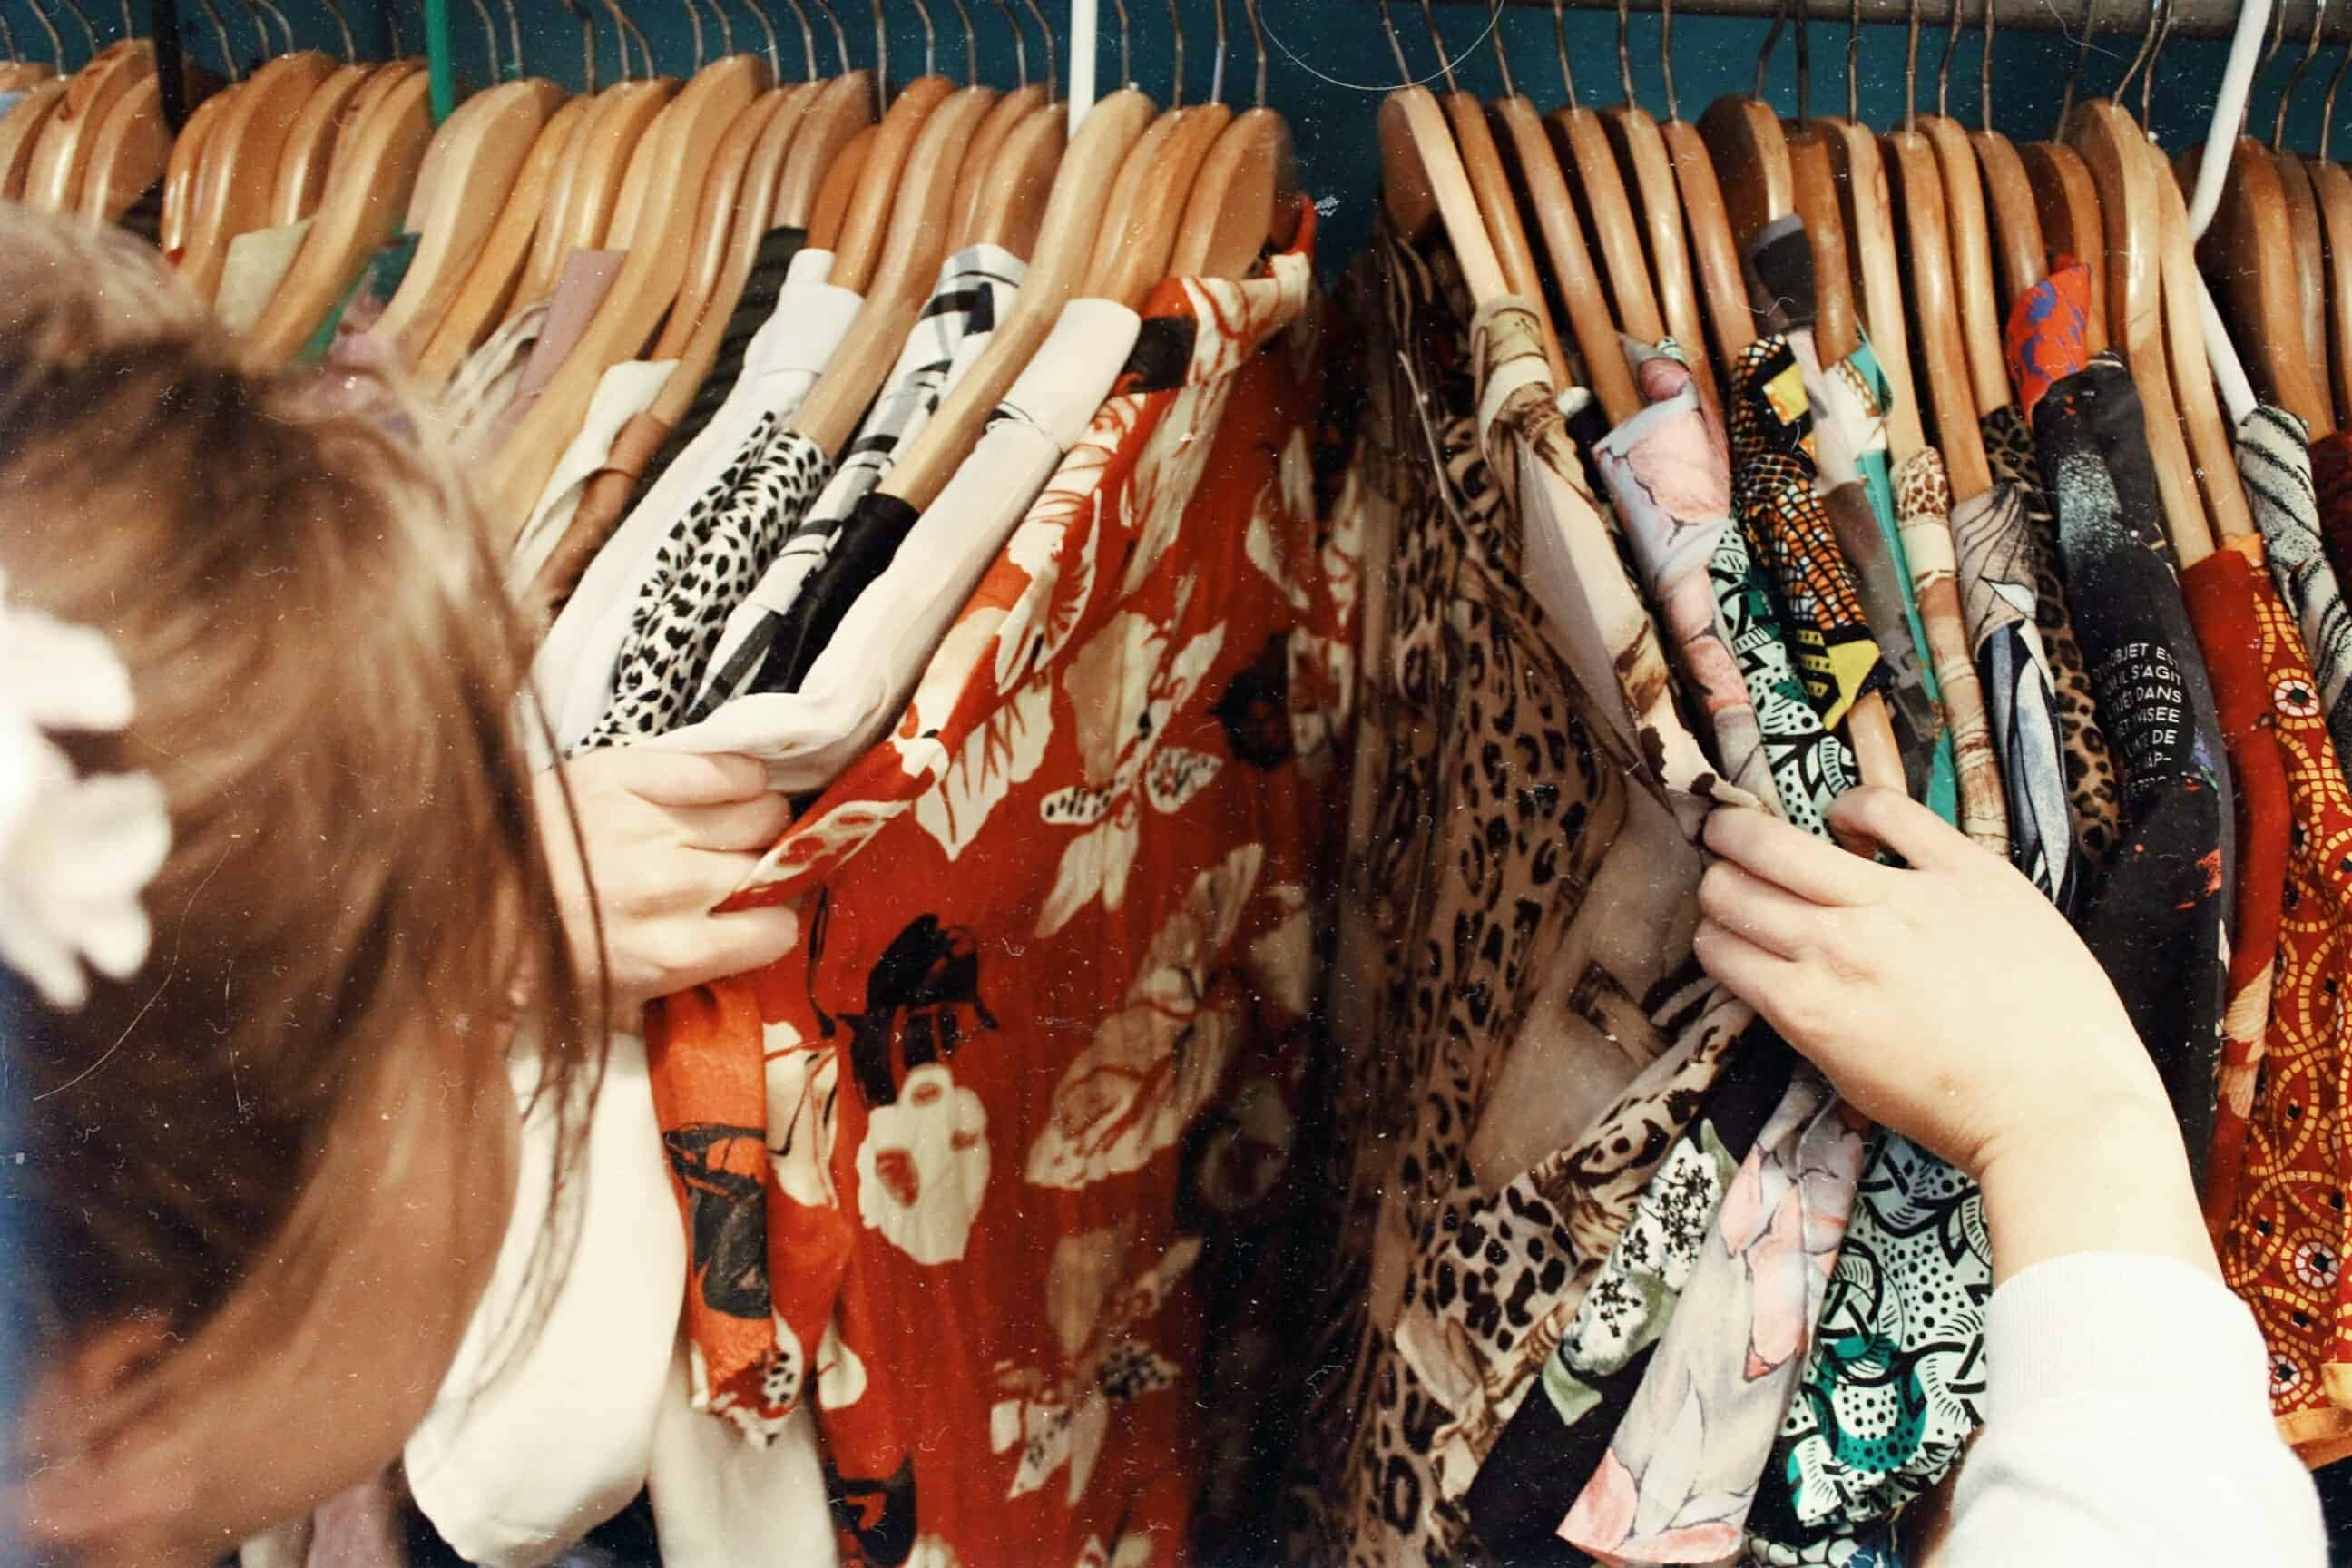 thrift store flipping clothes. Image of women going through her clothes within her closet.